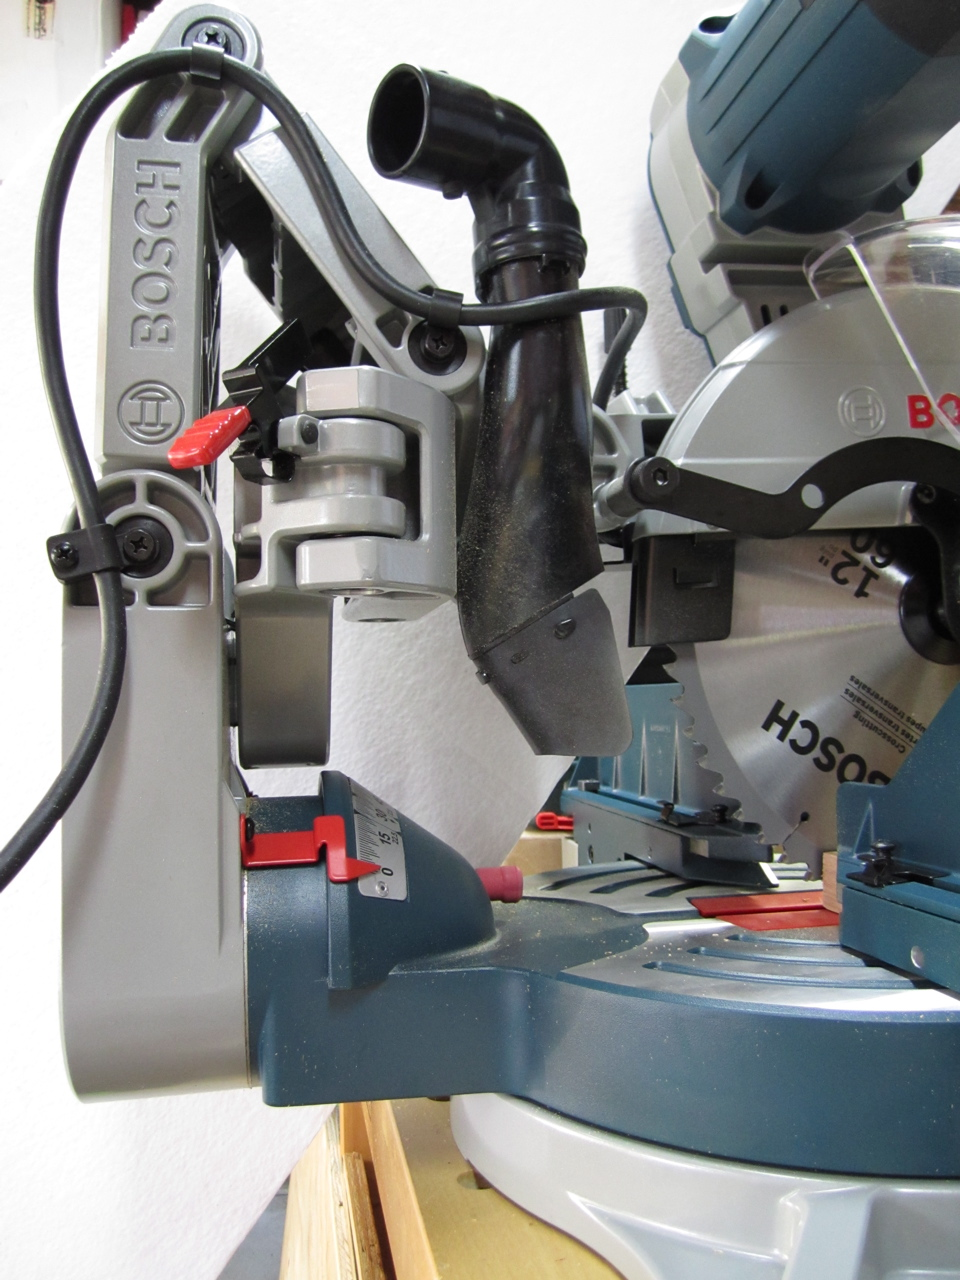 Bosch 12 Inch Axial Glide Miter Saw Review